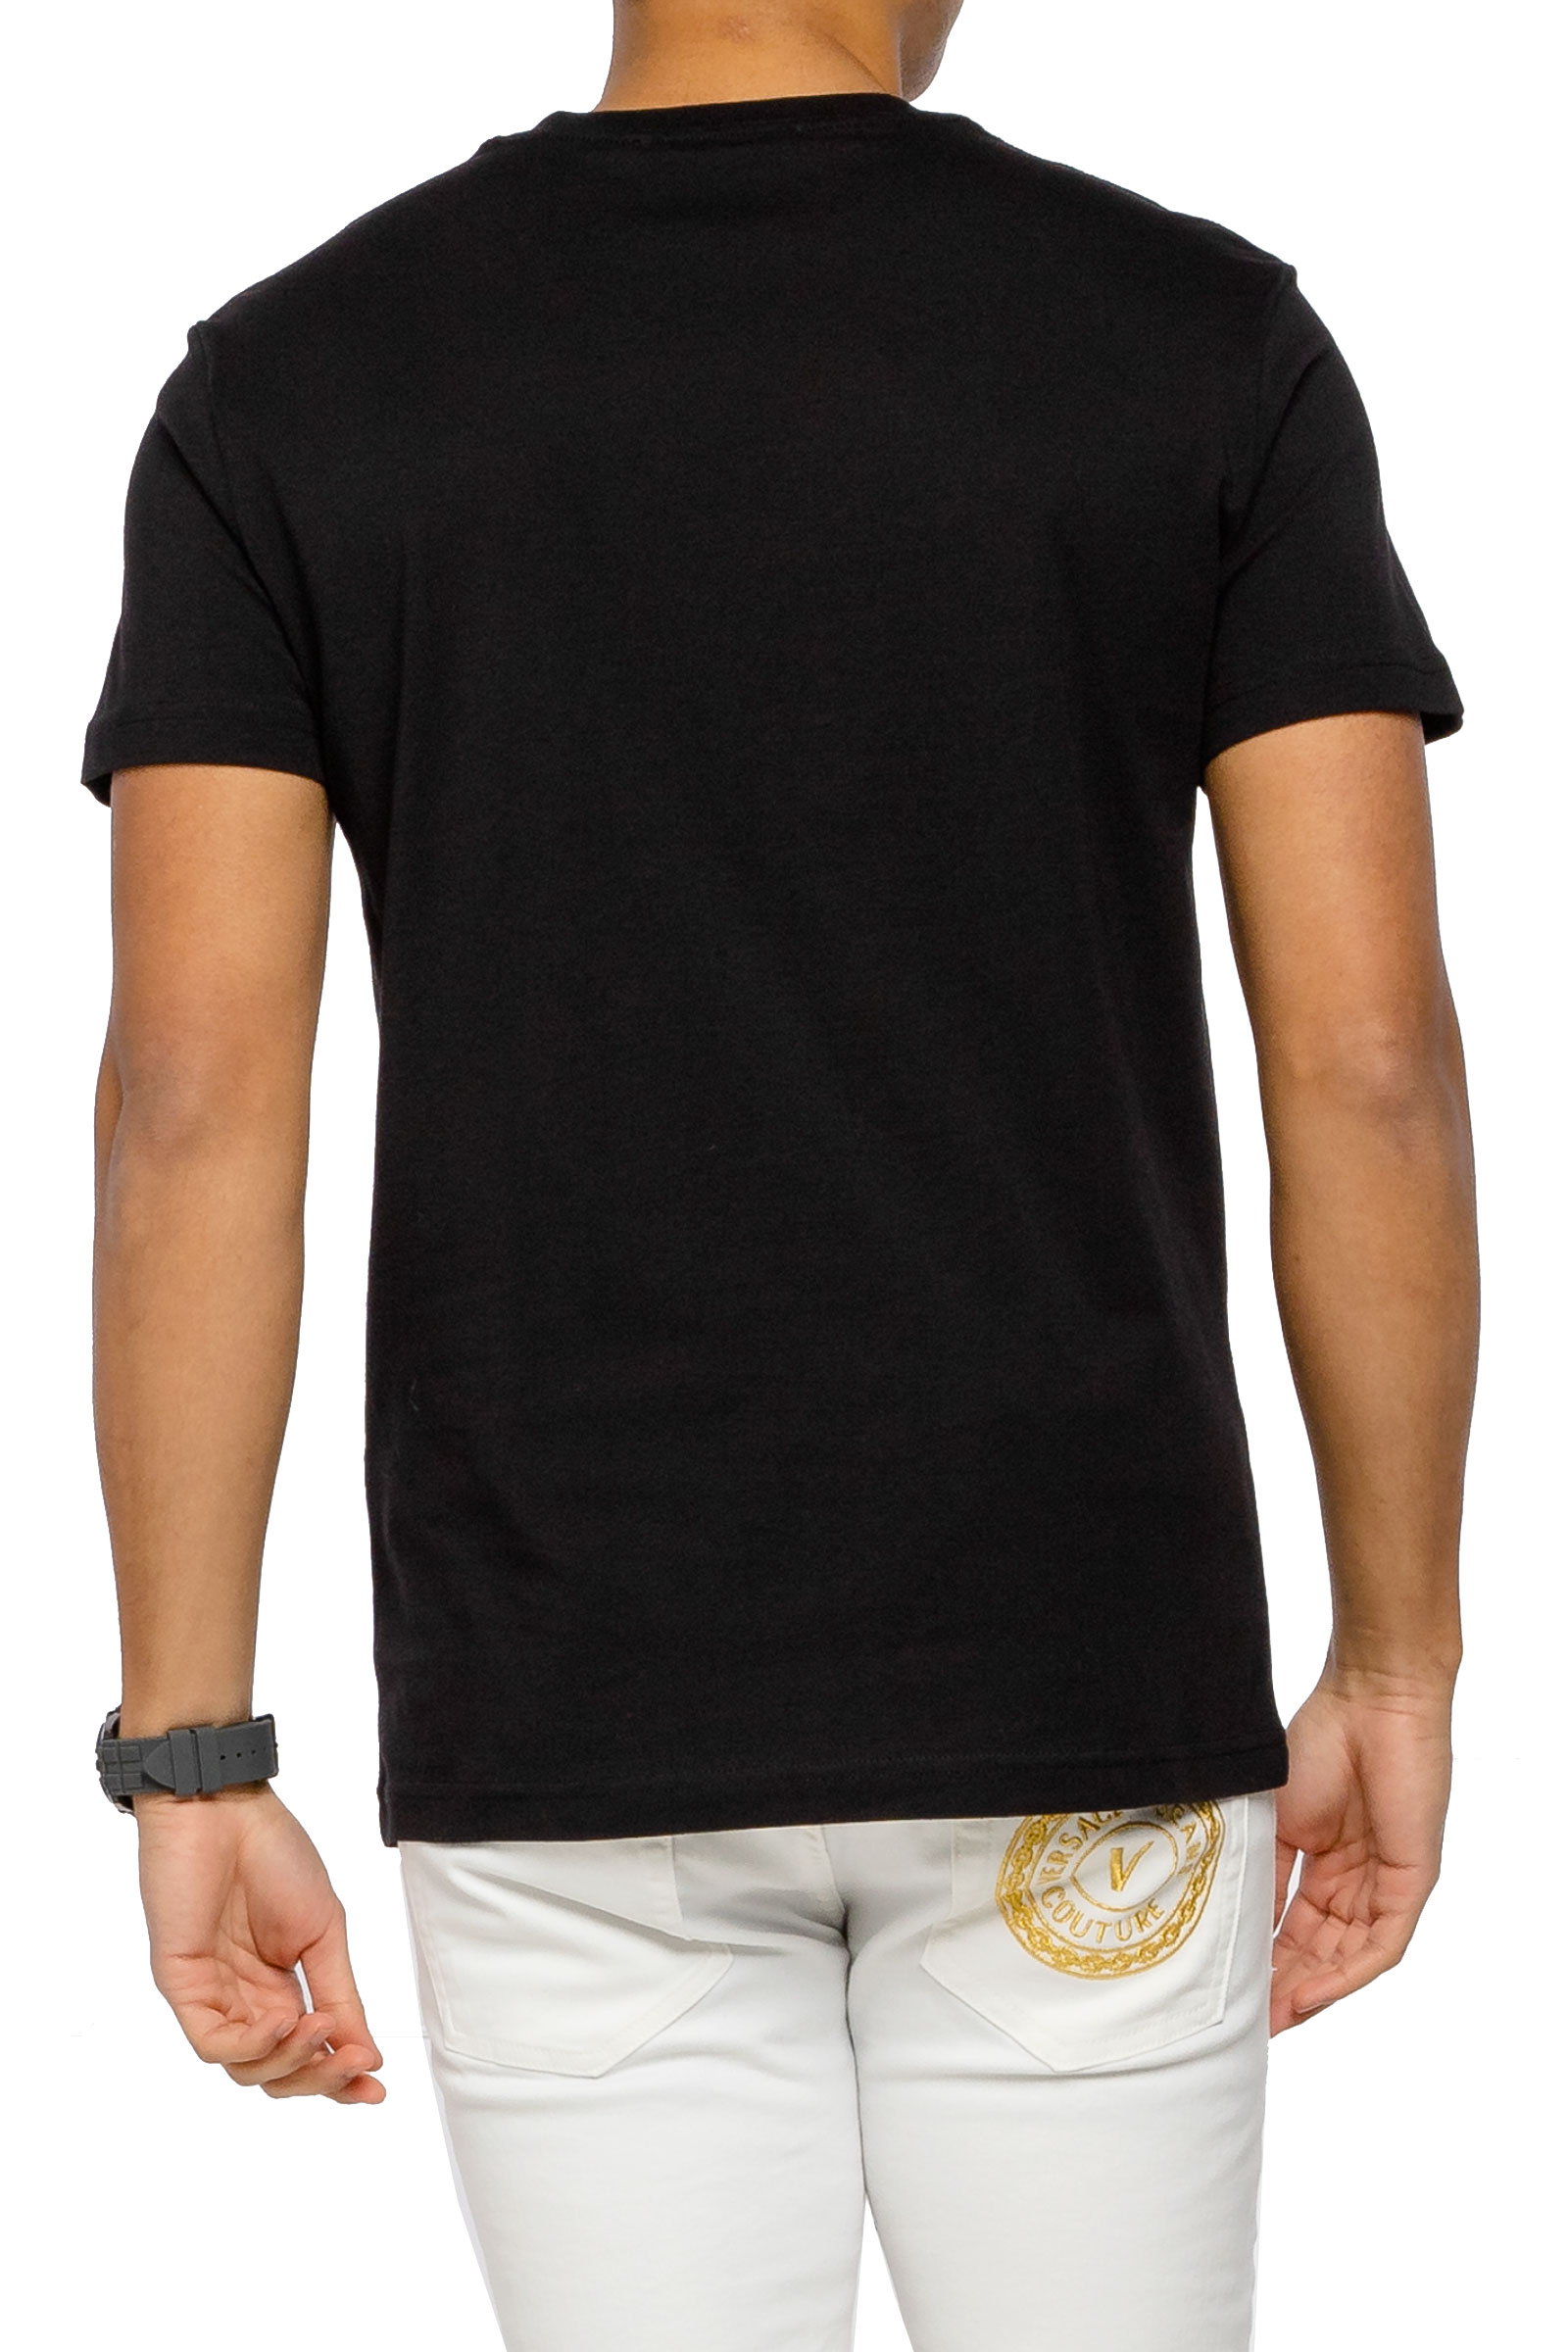 VERSACE JEANS COUTURE T-Shirt Uomo VERSACE JEANS COUTURE | T-Shirt | B3GWA7GB30382899